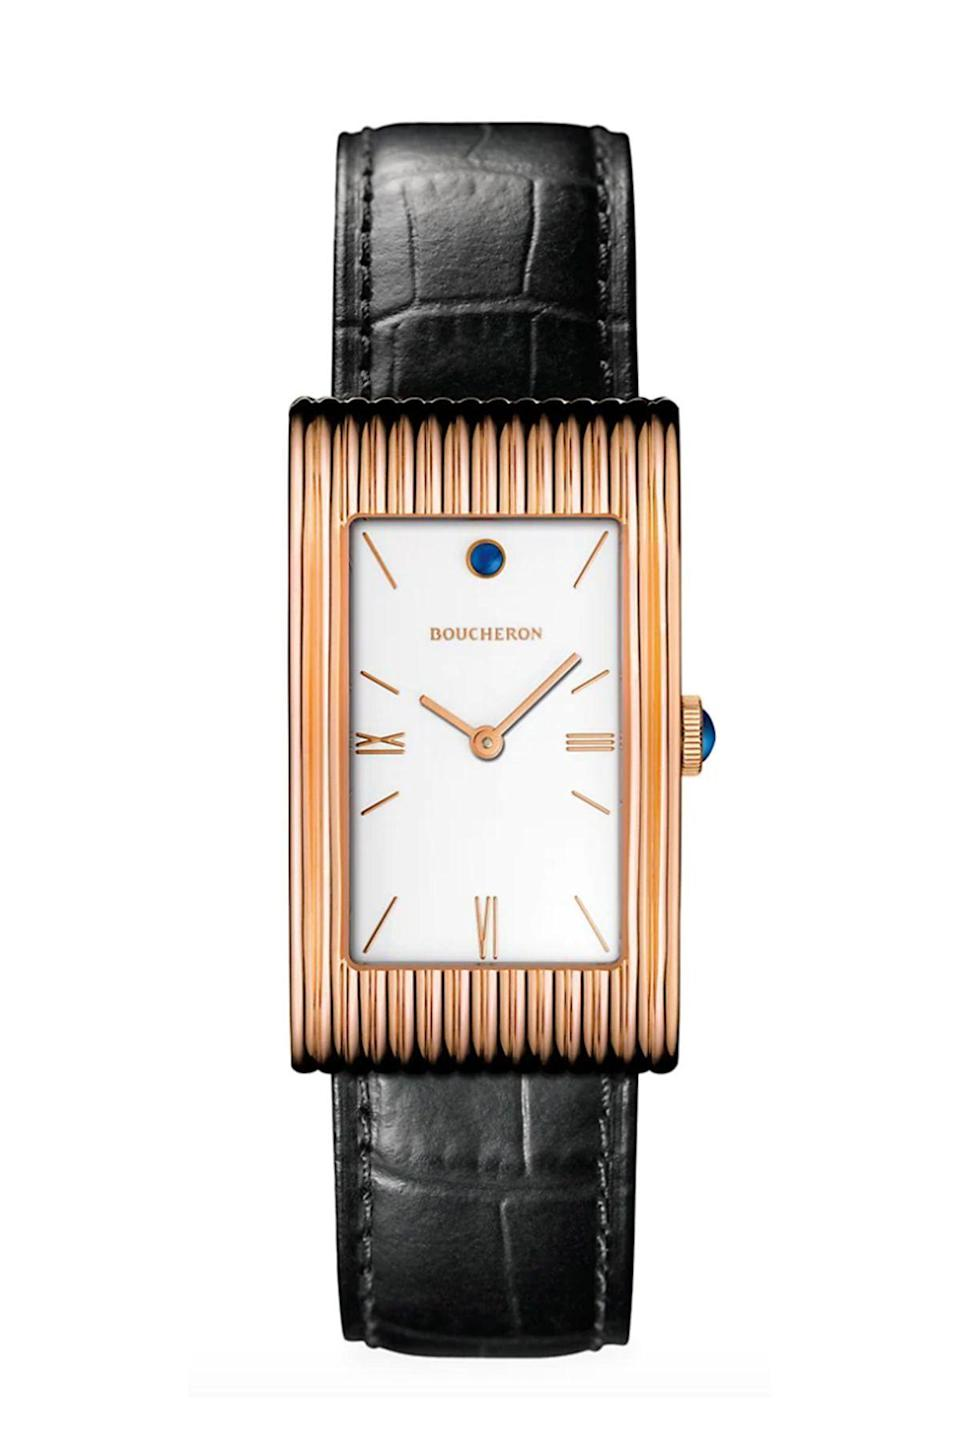 """<p><strong>Boucheron</strong></p><p>saksfifthavenue.com</p><p><strong>$16300.00</strong></p><p><a href=""""https://go.redirectingat.com?id=74968X1596630&url=https%3A%2F%2Fwww.saksfifthavenue.com%2Fproduct%2Fboucheron-reflet-18k-rose-gold-rectangular-alligator-strap-watch-0400011660367.html%3Fdwvar_0400011660367_color%3DROSE%2BGOLD&sref=https%3A%2F%2Fwww.townandcountrymag.com%2Fstyle%2Fjewelry-and-watches%2Fg36186288%2Fbest-rose-gold-watches-women%2F"""" rel=""""nofollow noopener"""" target=""""_blank"""" data-ylk=""""slk:Shop Now"""" class=""""link rapid-noclick-resp"""">Shop Now</a></p><p>The minimalist's take on the rose gold watch. </p>"""